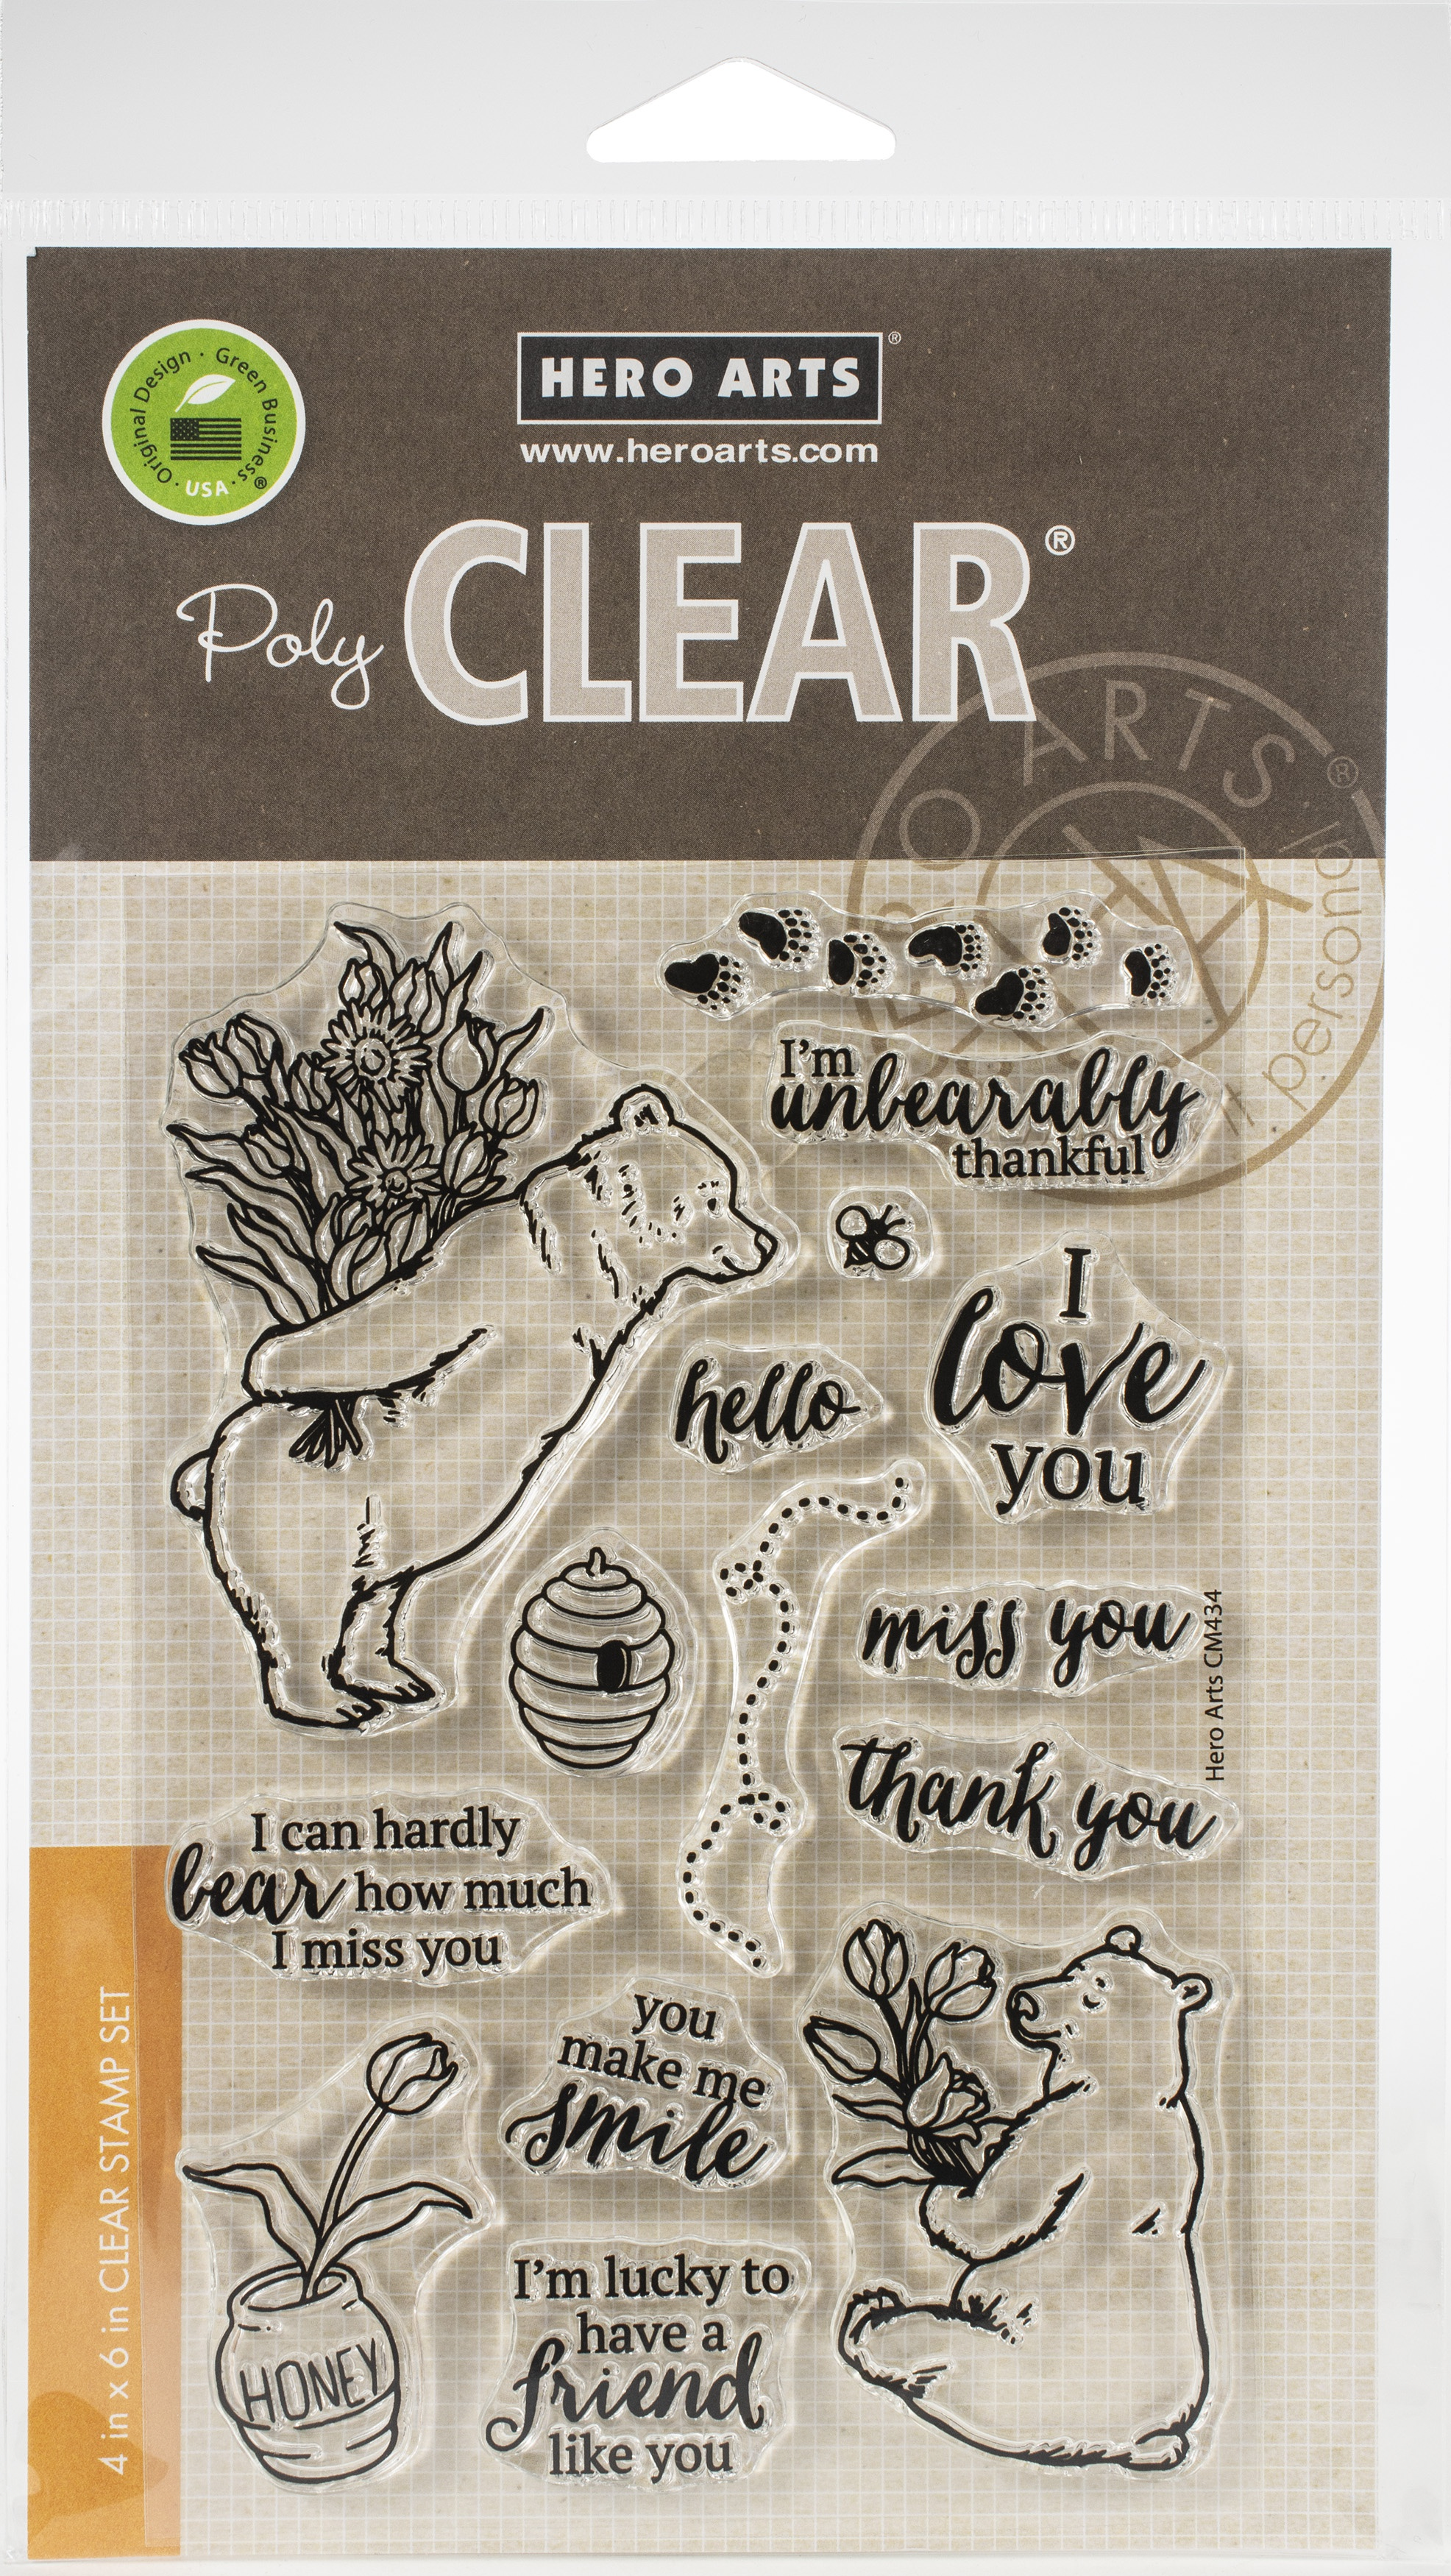 Hero Arts die and Clear Stamps 4X6-Unbearably Thankful